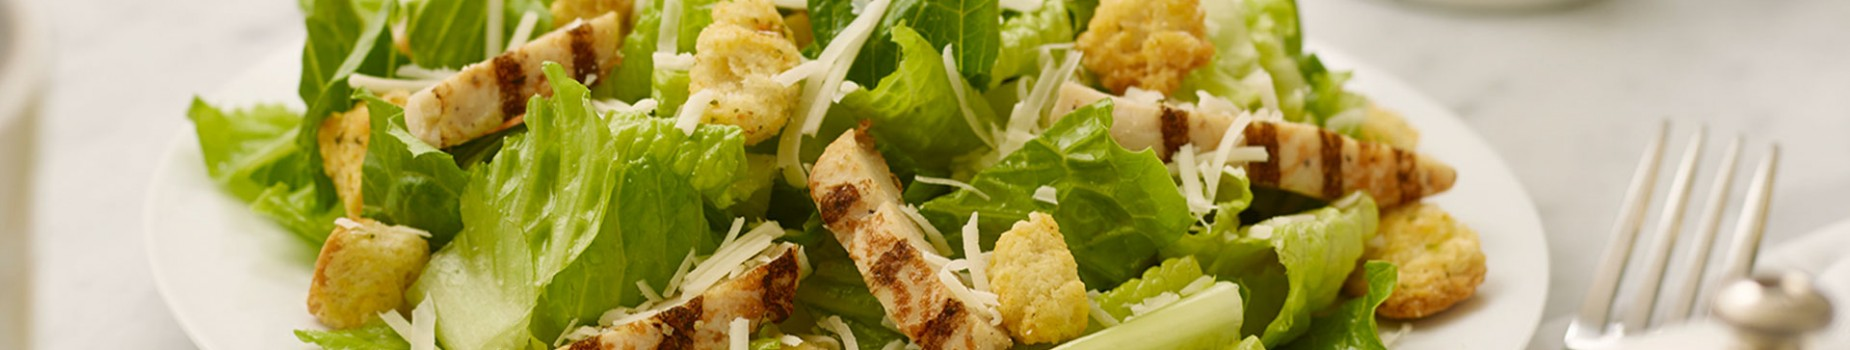 3064-53ChickenCaesarSalad140318